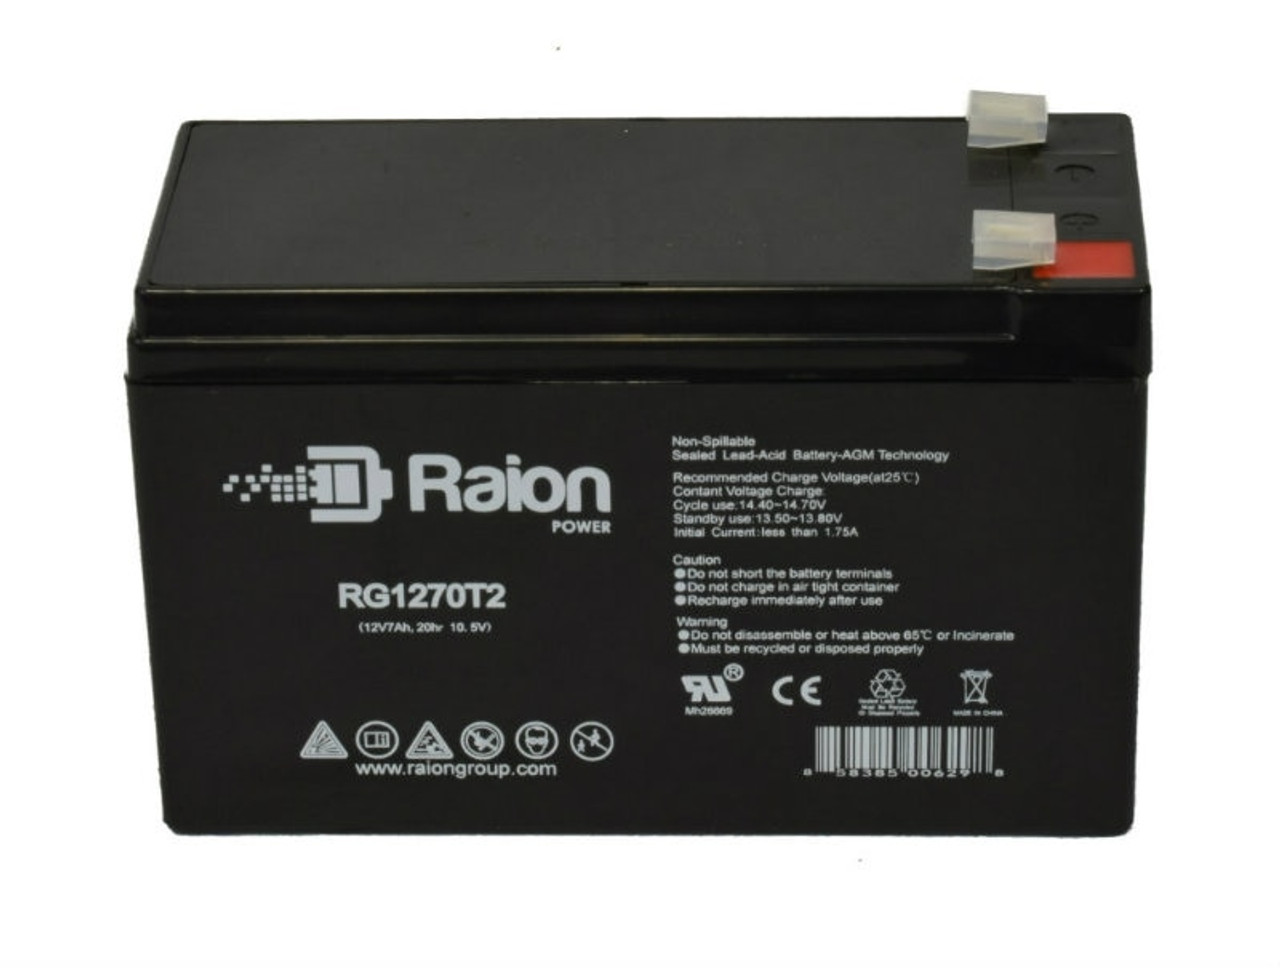 Raion Power RG1270T2 12 Volt 7 Amp AGM Battery With F2 Terminals